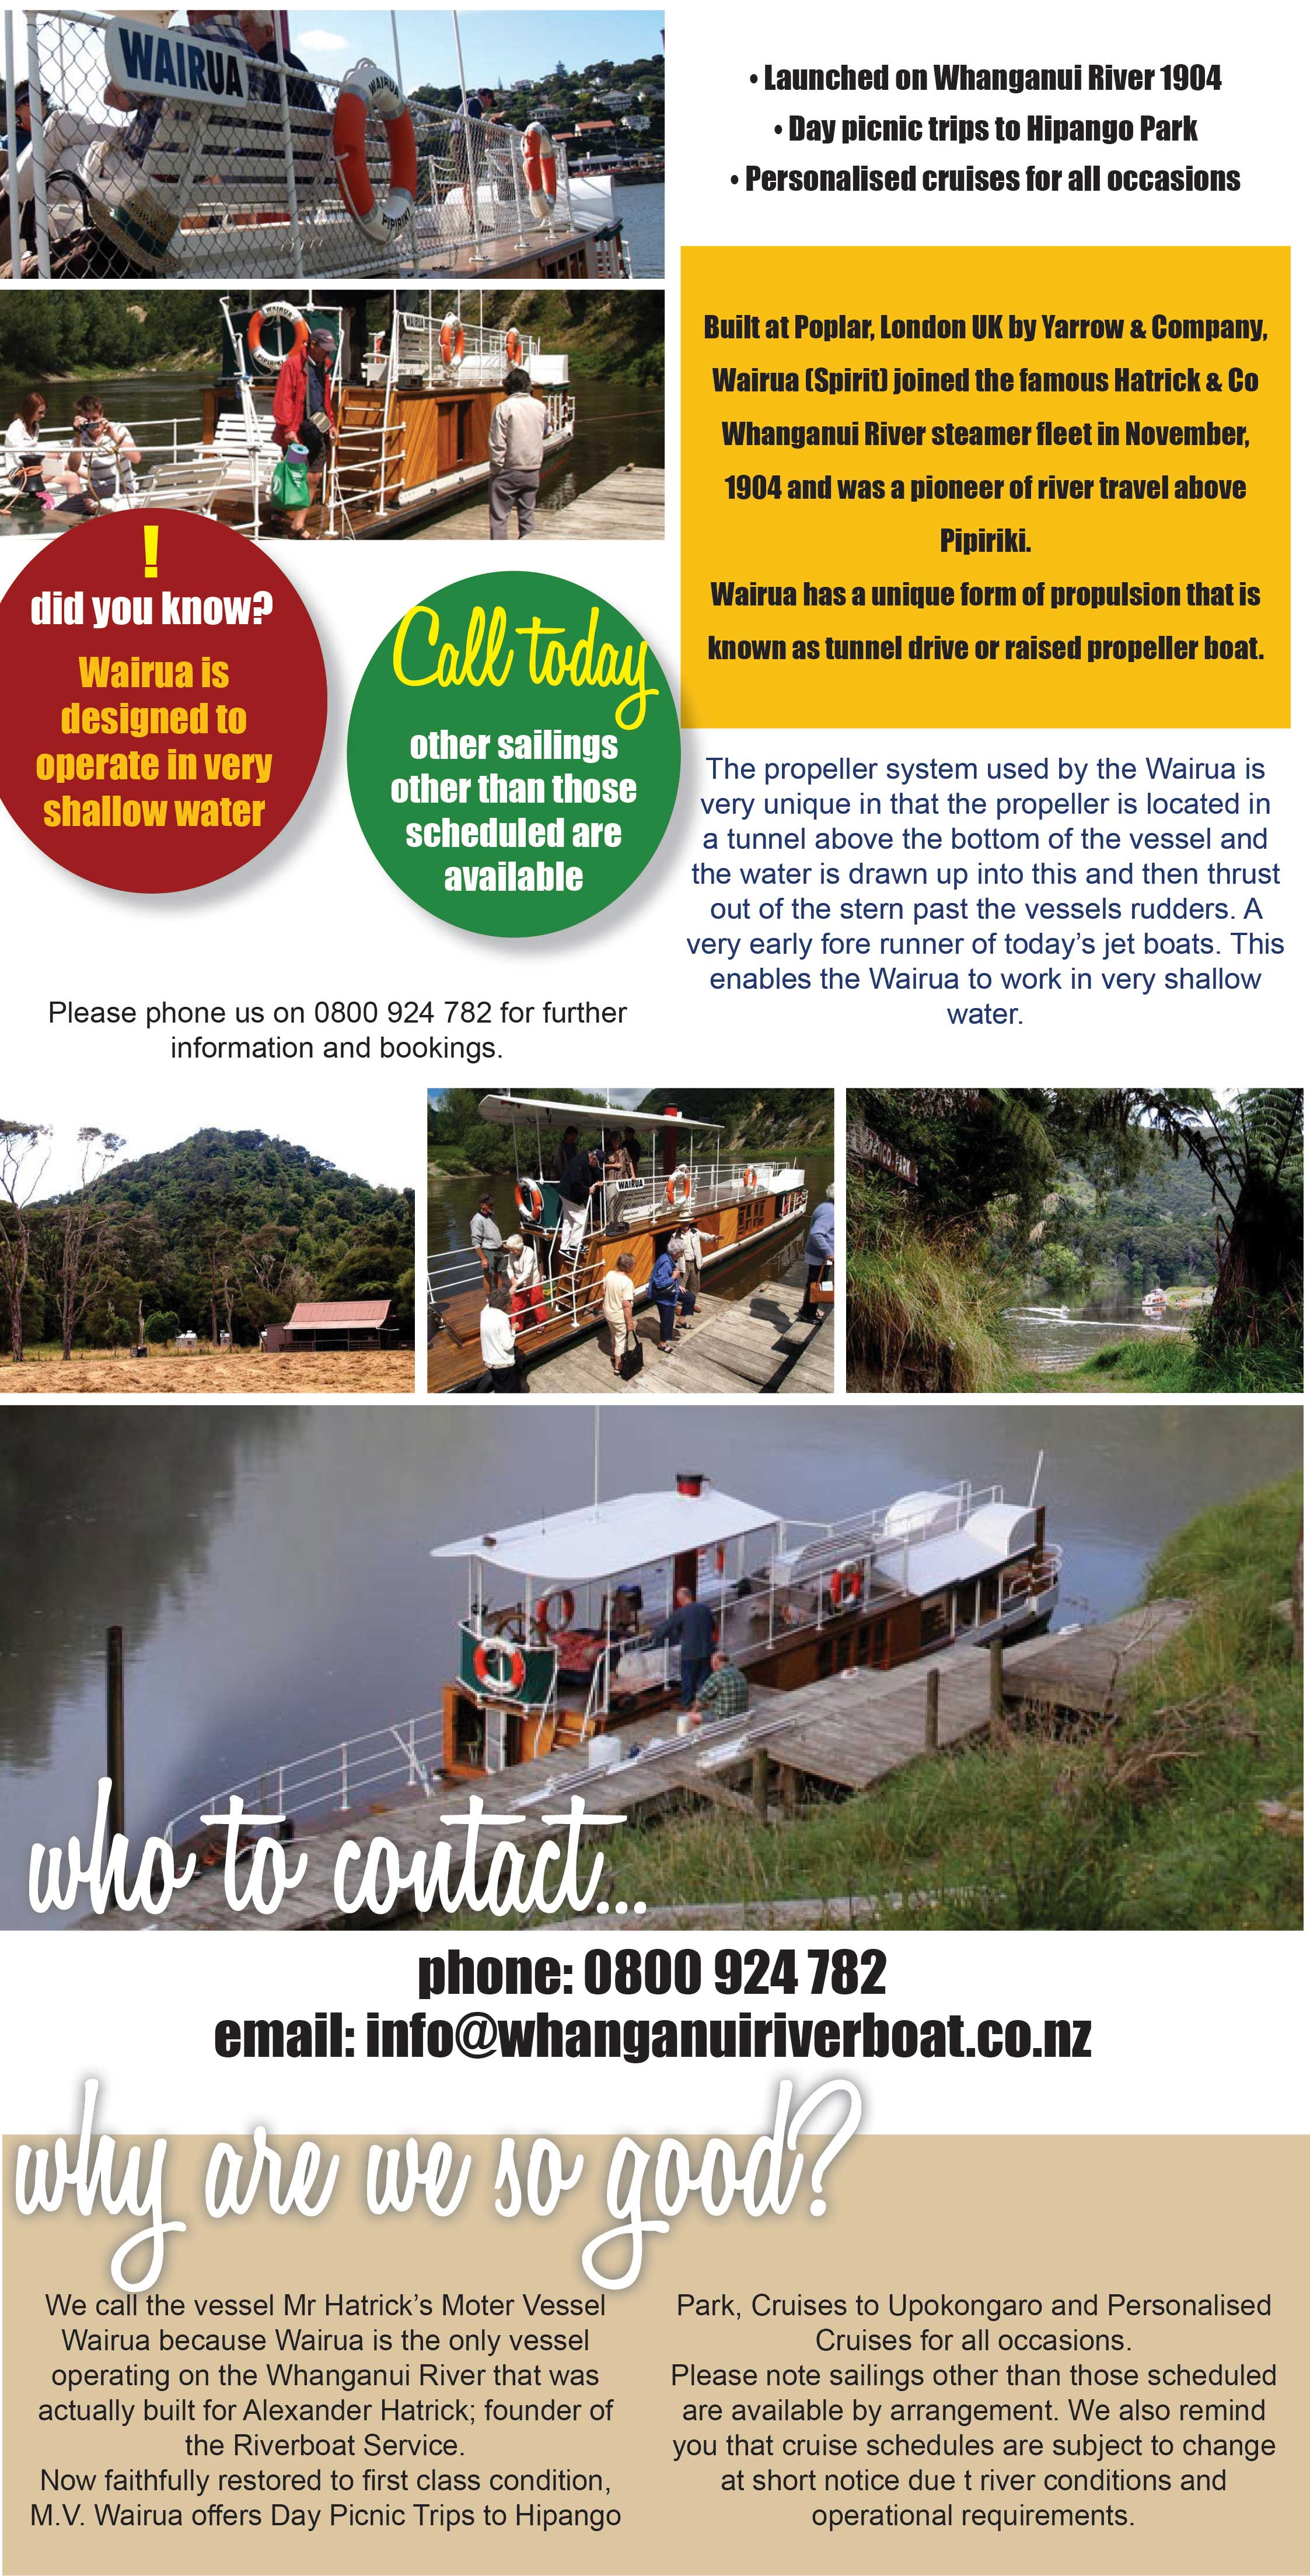 Wanganui Riverboat, Wairua (Spirit), Hatrick & Co Whanganui River Steamer, picnic trips to Hipango park, personalised cruises for all occasions, Upokongaro. Wairua Wanganui. River trips. River trips Wanganui.